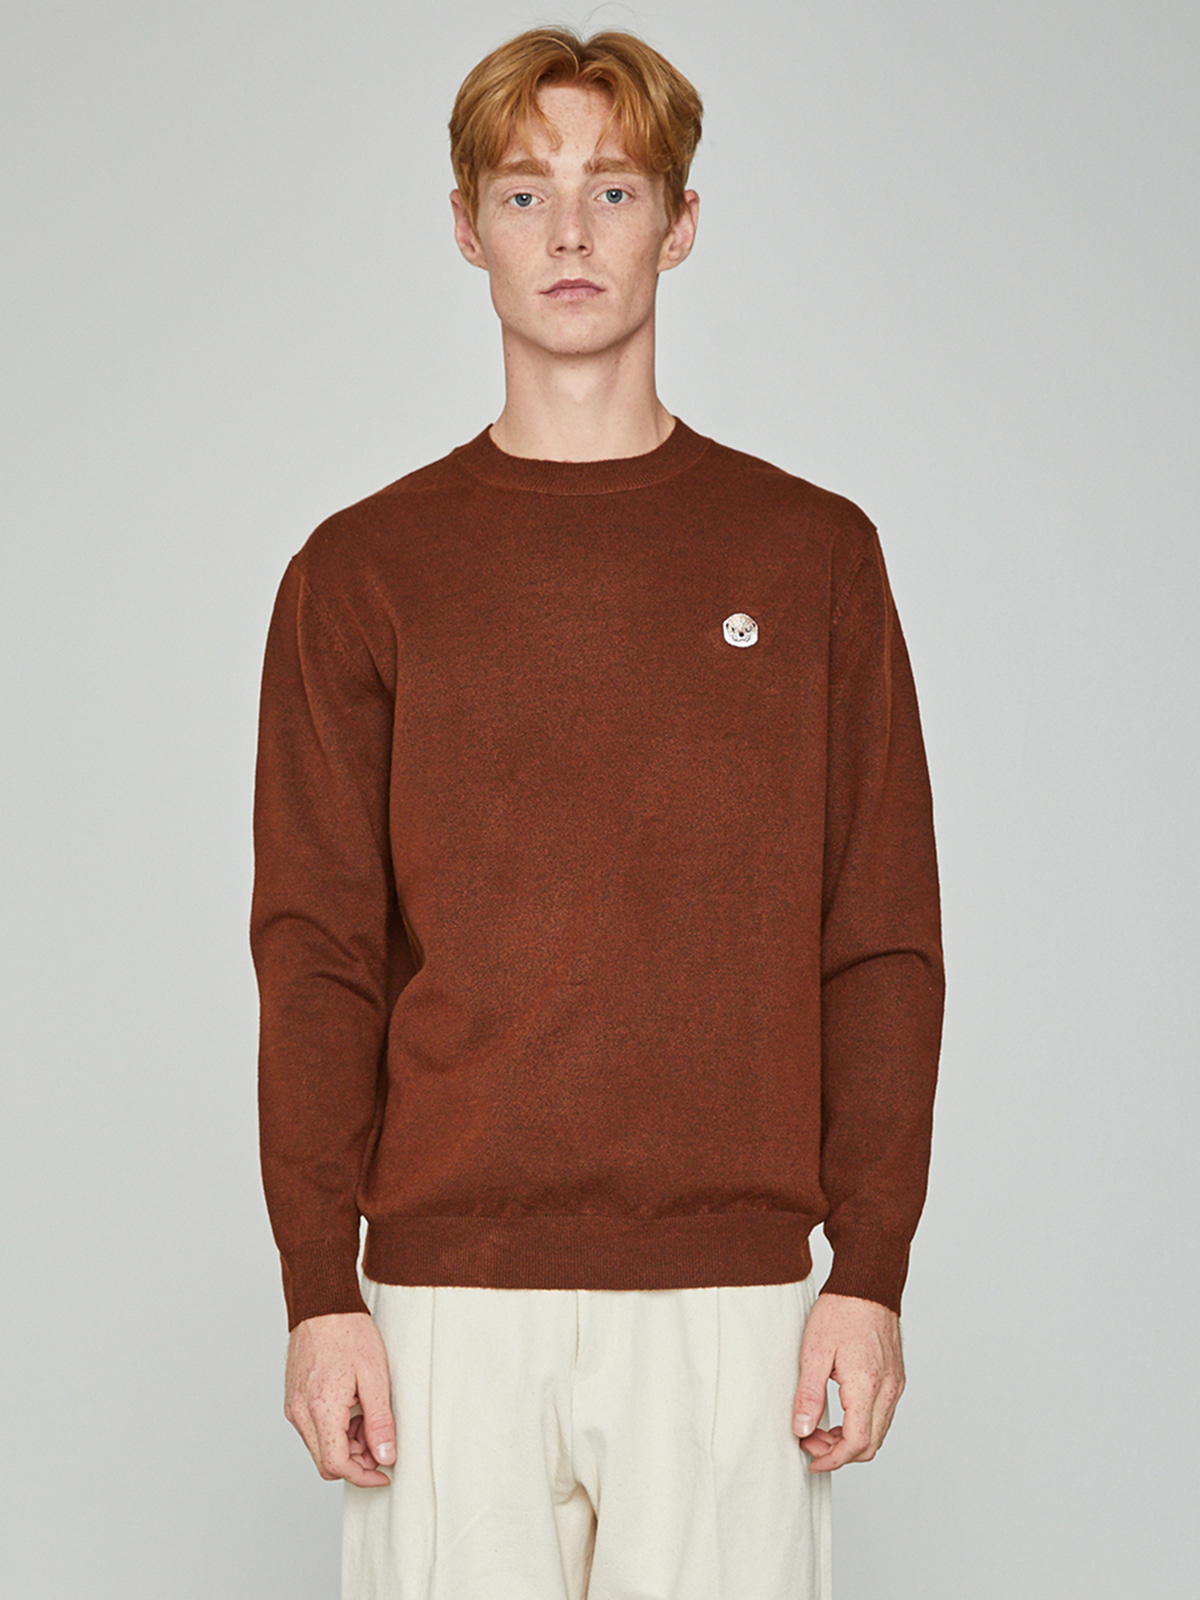 Lazyotter Crewneck Knit Brown